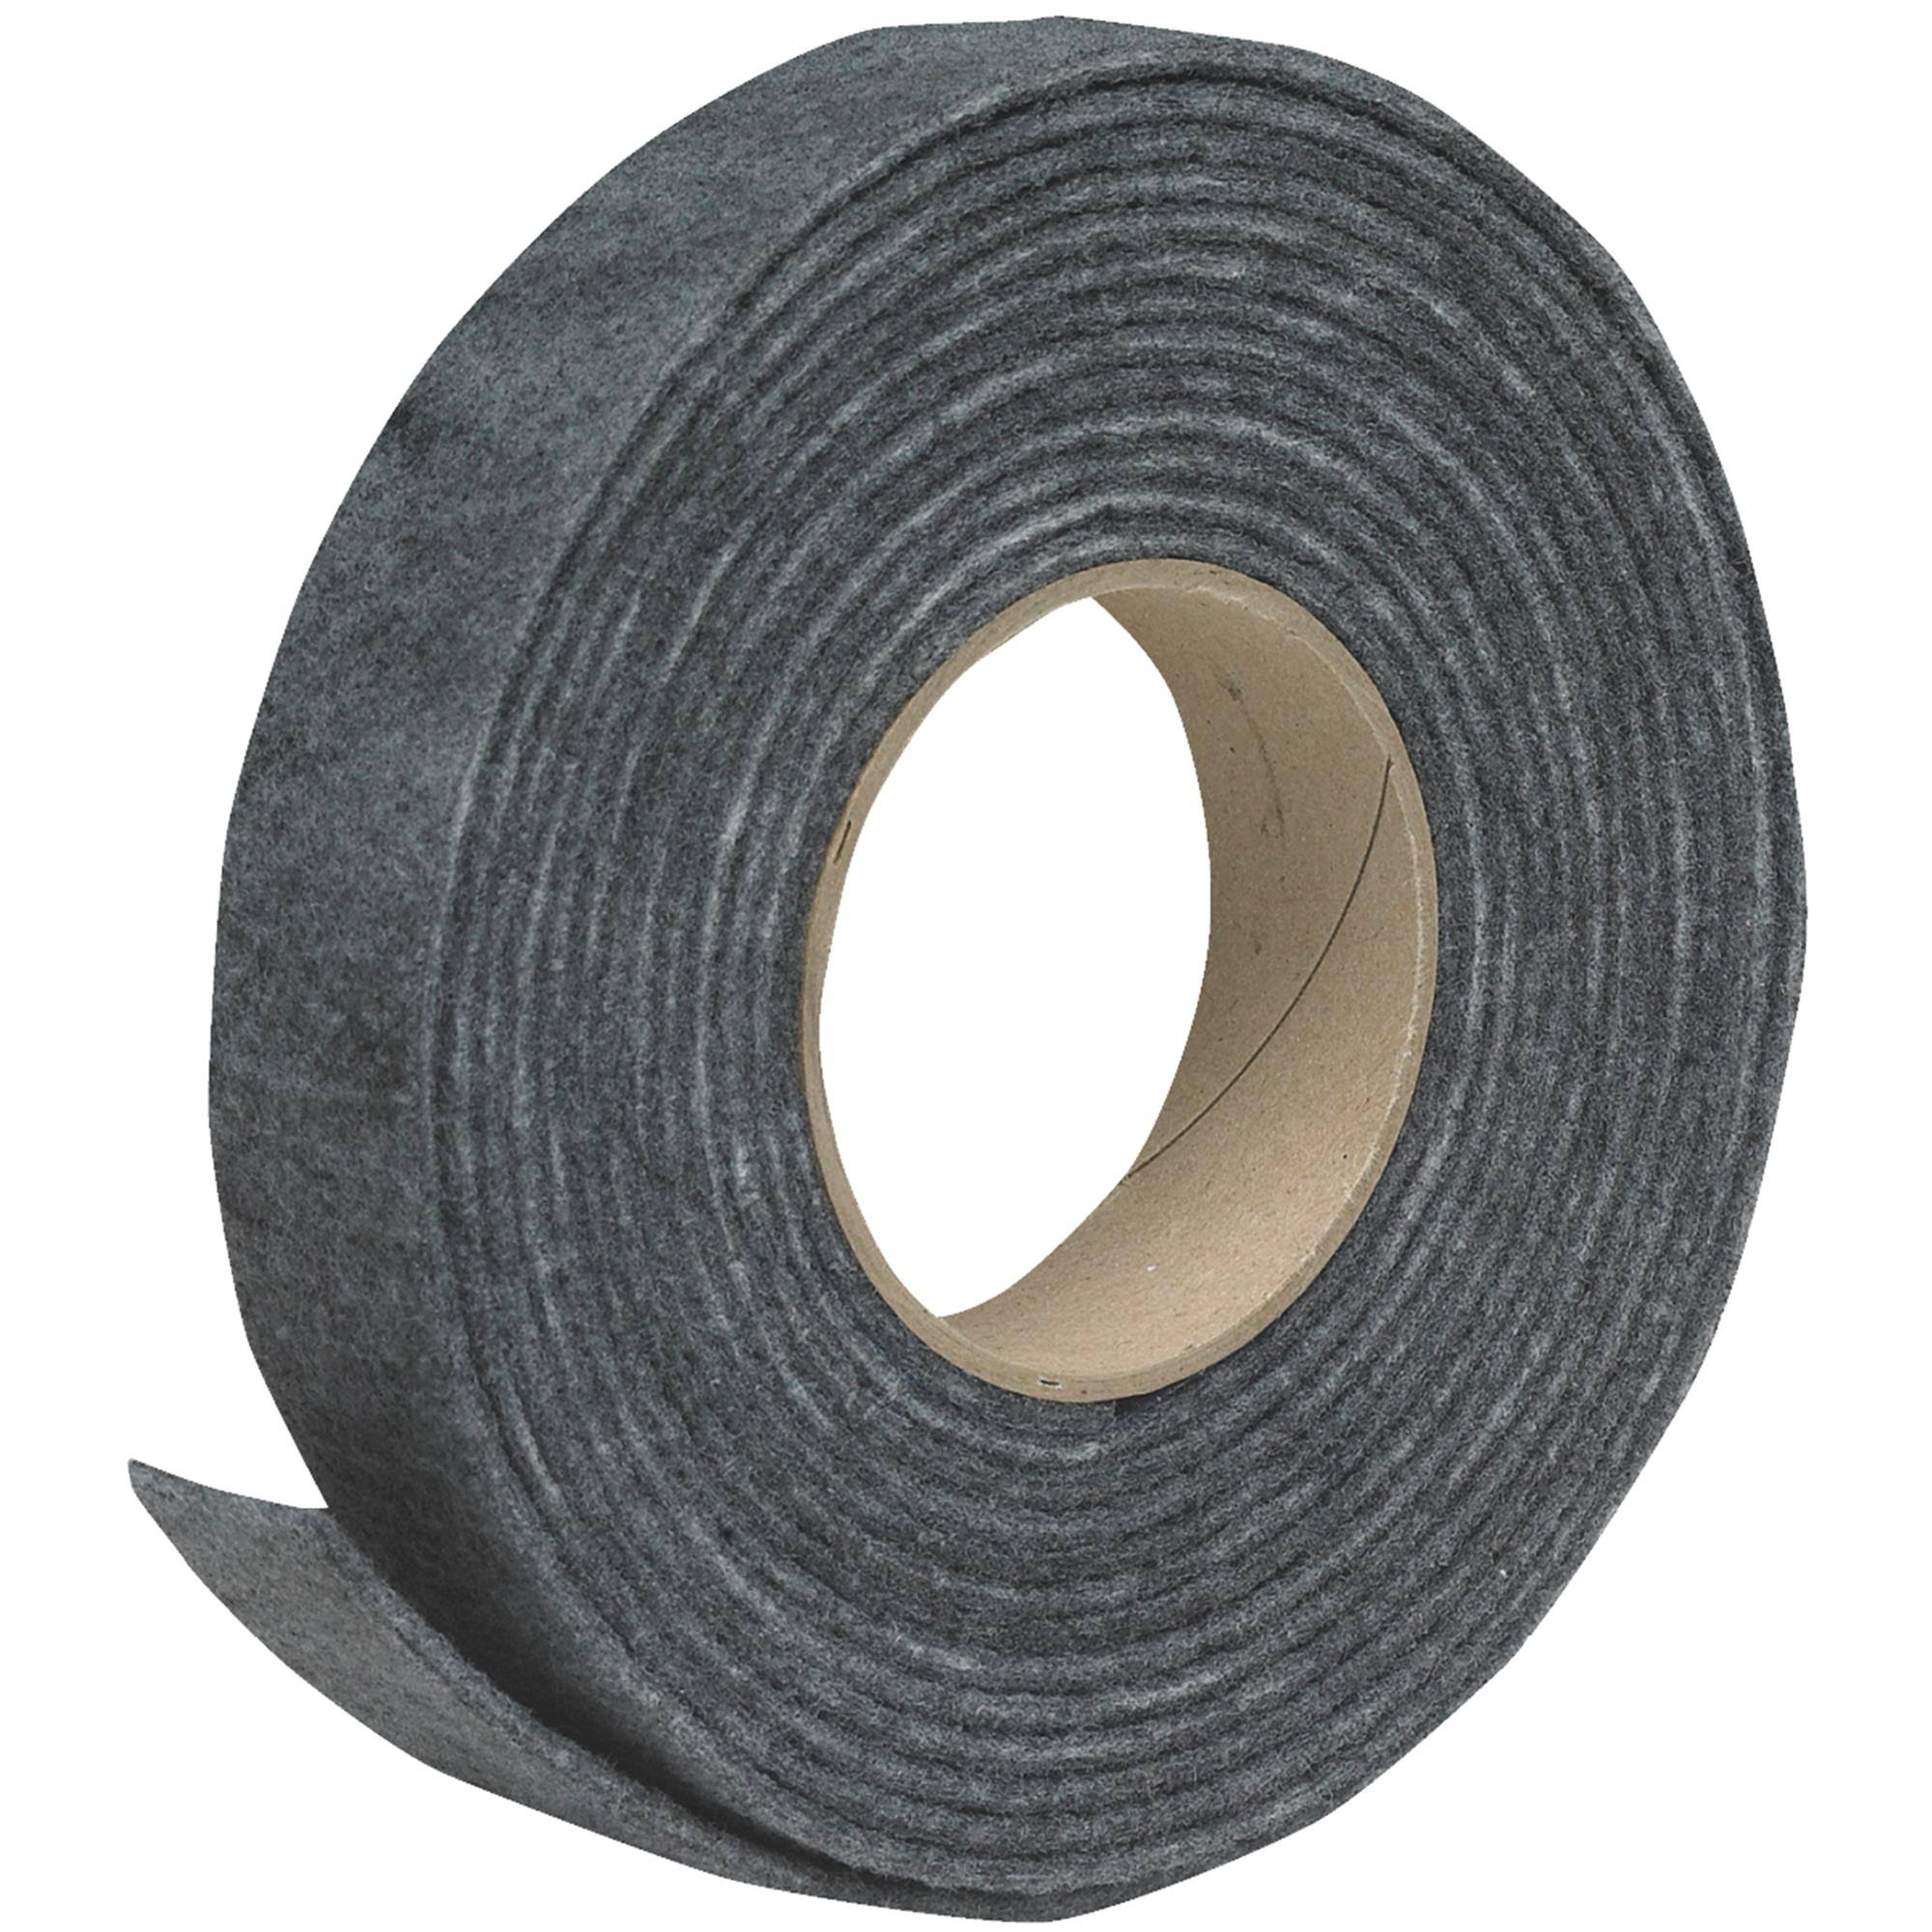 Do It Felt Weatherseal - S214/17HDI